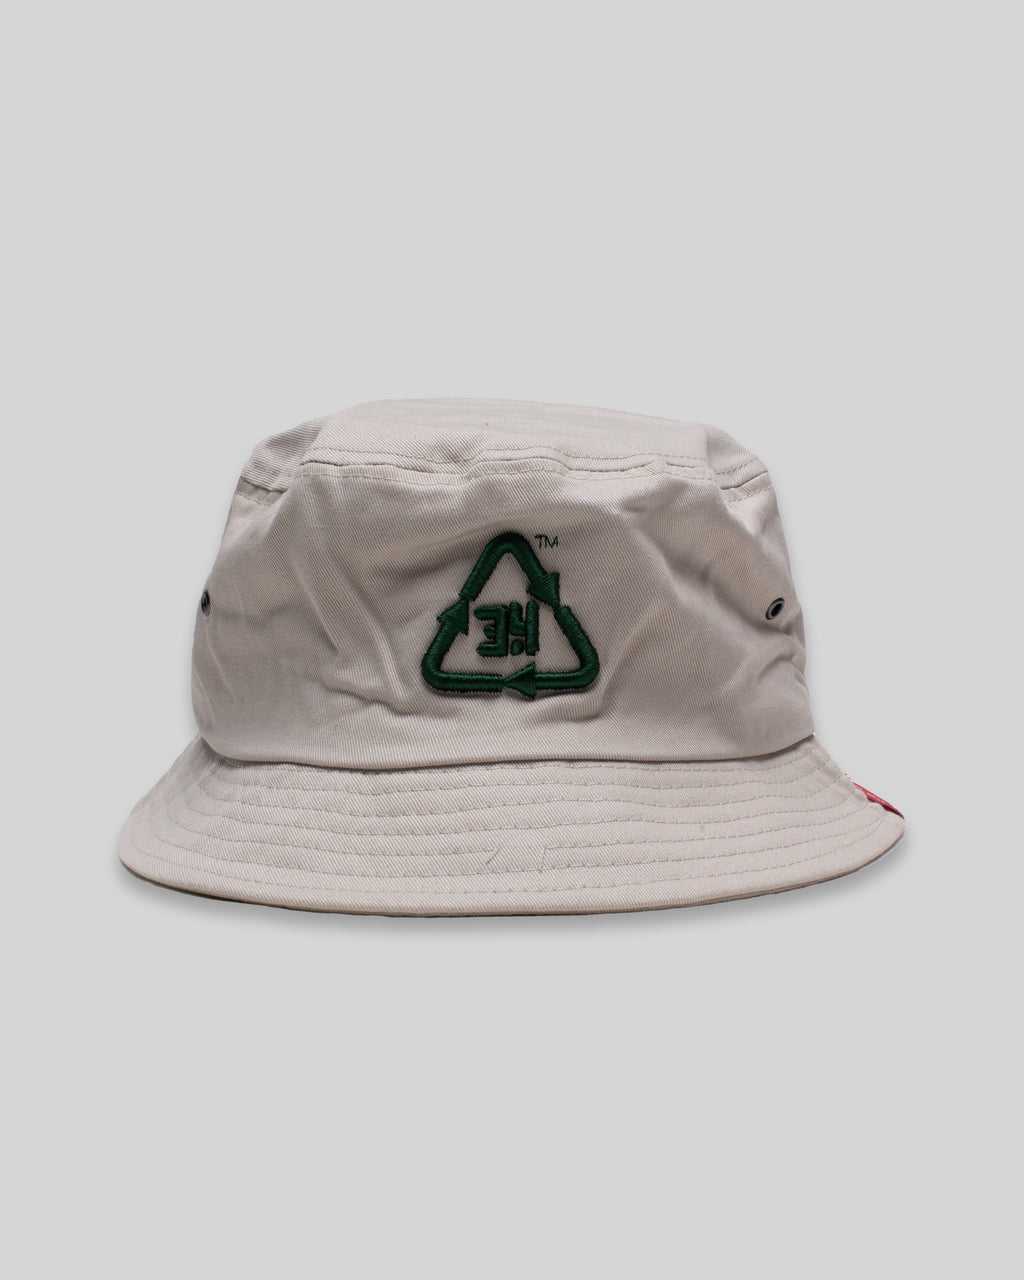 3.4 Metal Eyelet Bucket Hat 7